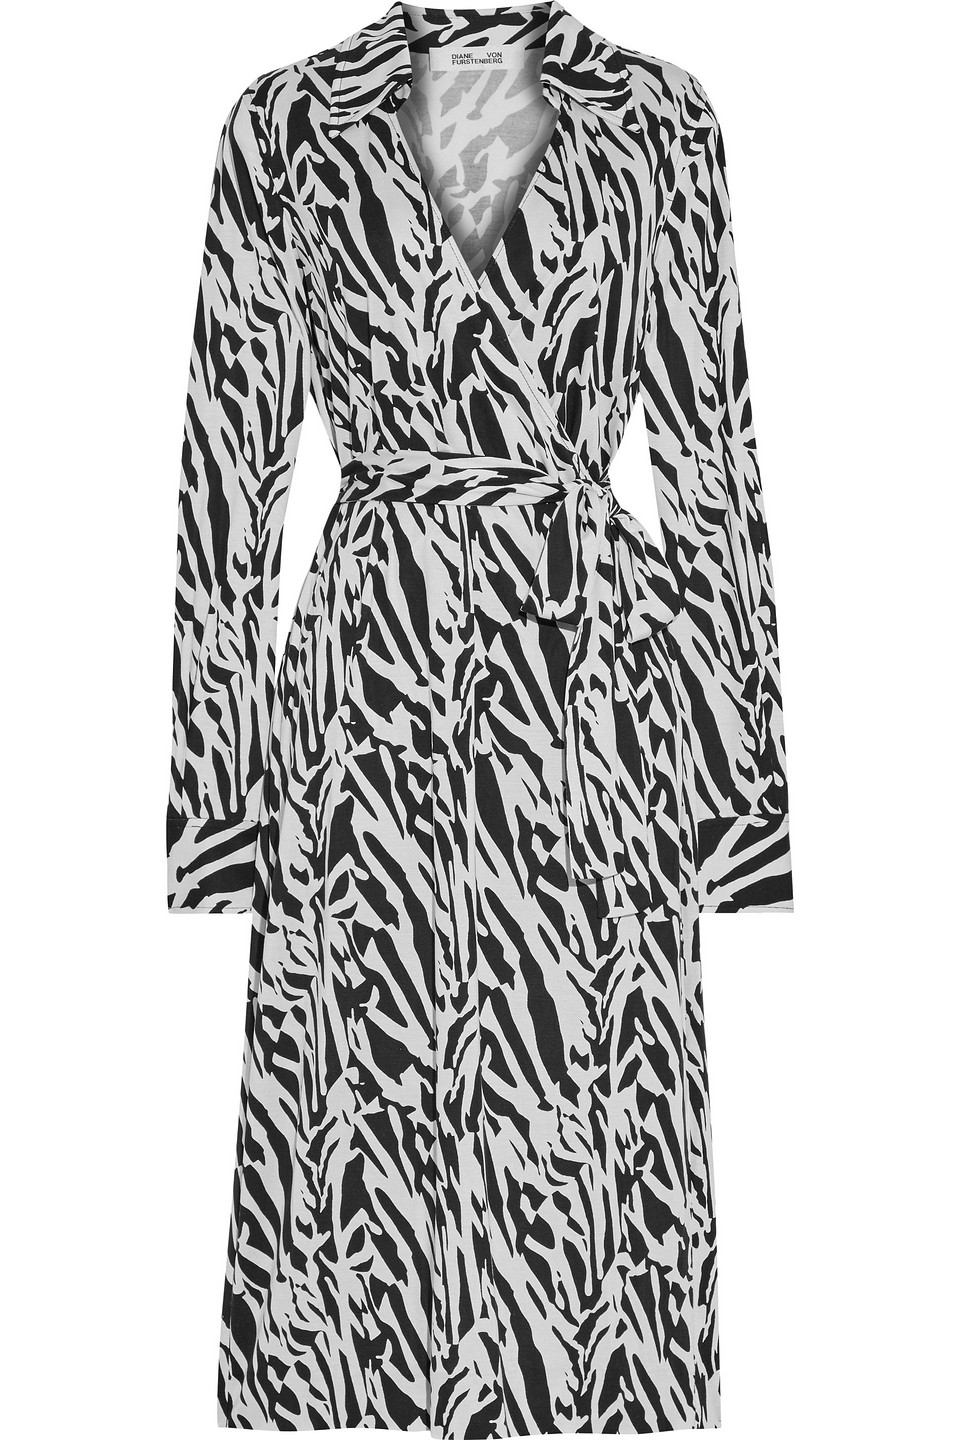 Diane Von Furstenberg | Diane Von Furstenberg Woman Power Wrap-effect Tiger-print Silk-jersey Midi Dress Black | Clouty